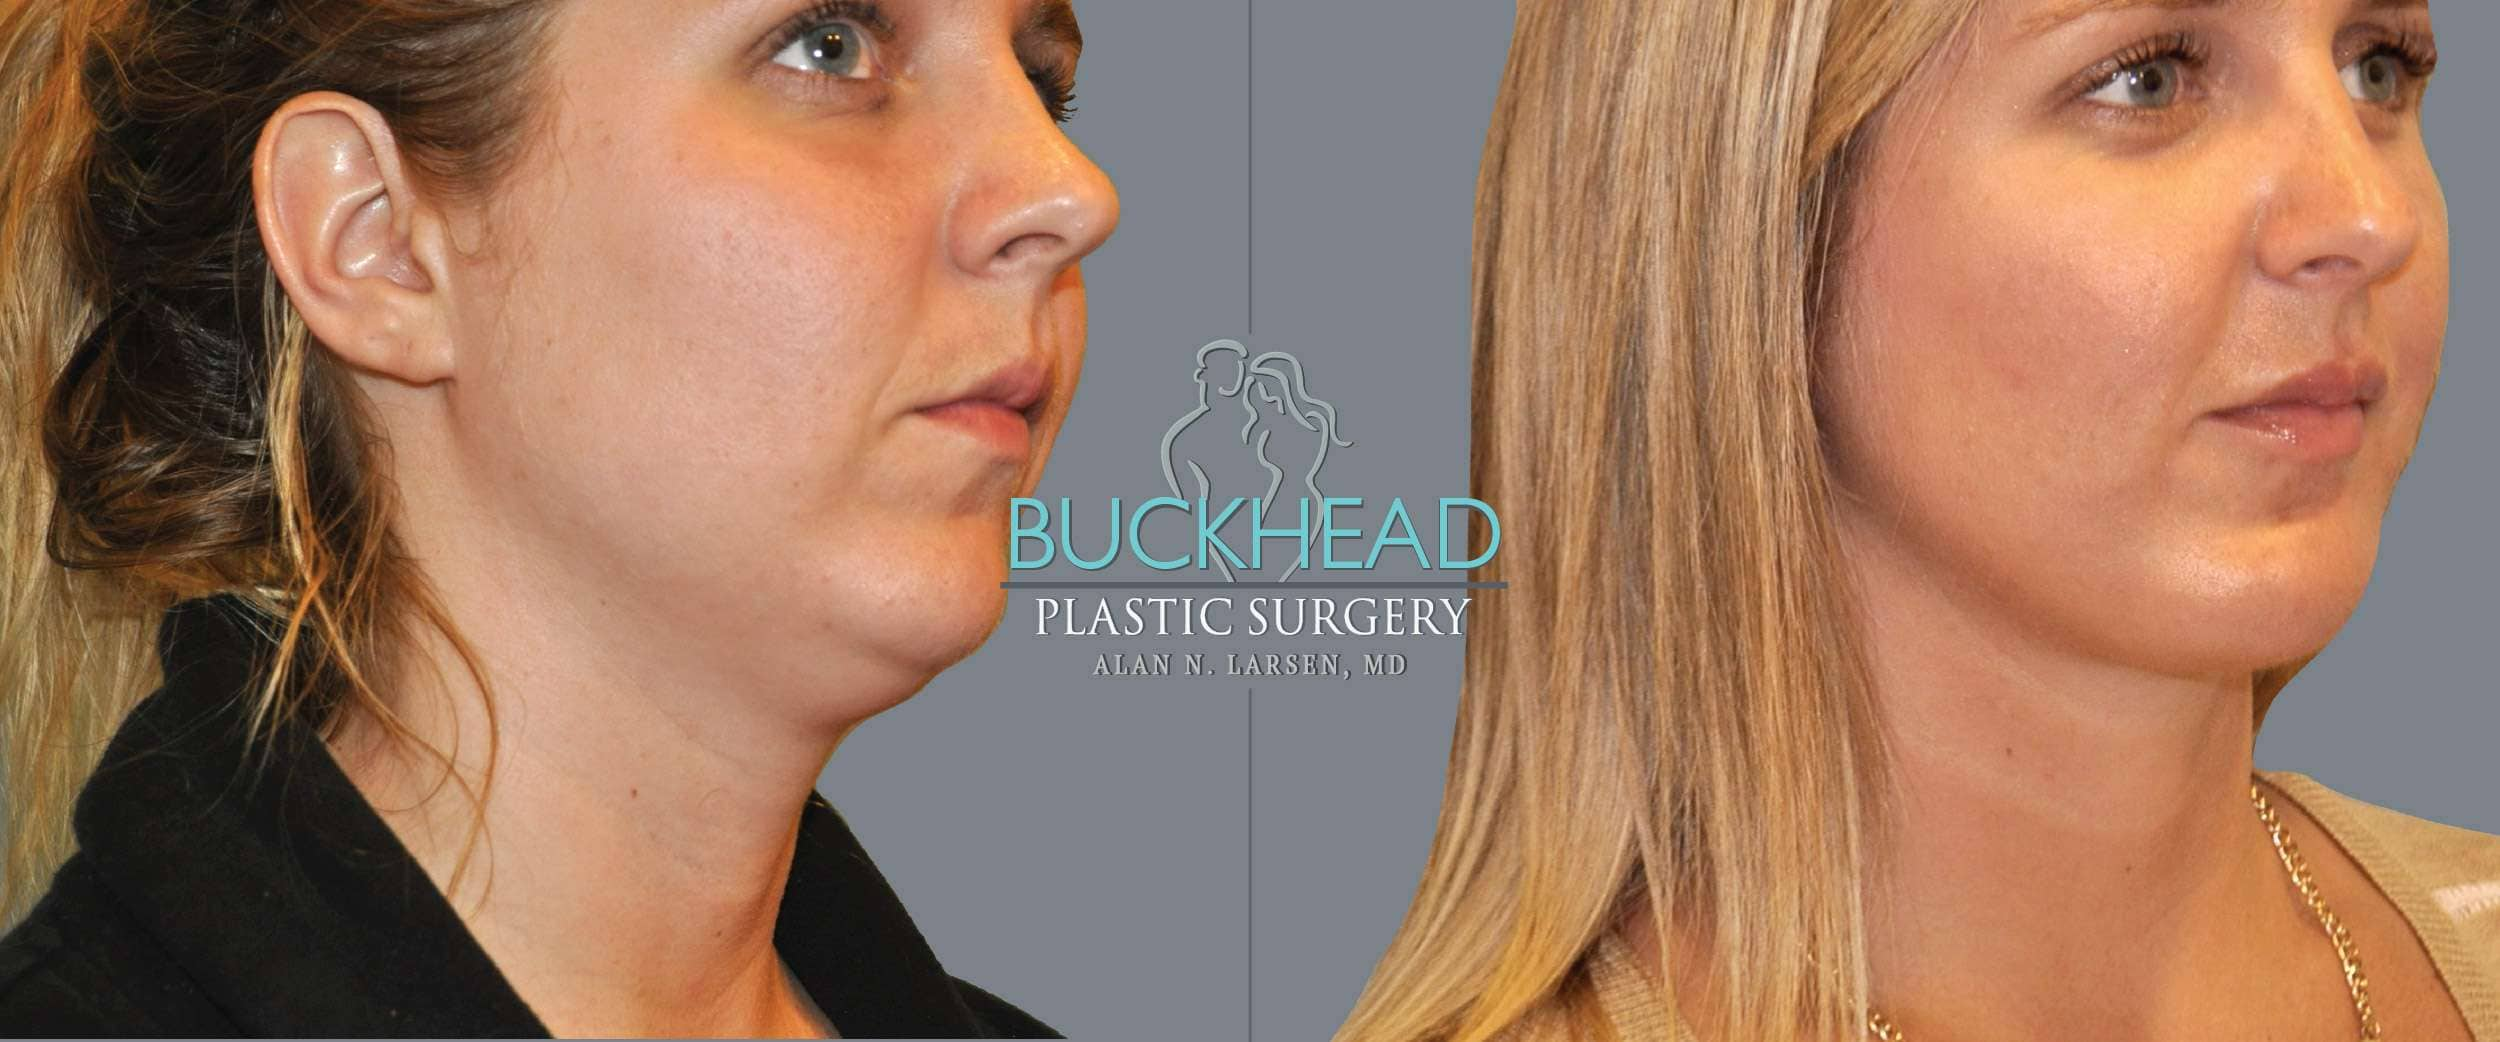 Before and After Photo Gallery | Liposuction - Neck | Buckhead Plastic Surgery | Alan N. Larsen, MD | Board-Certified Plastic Surgeon | Atlanta GA